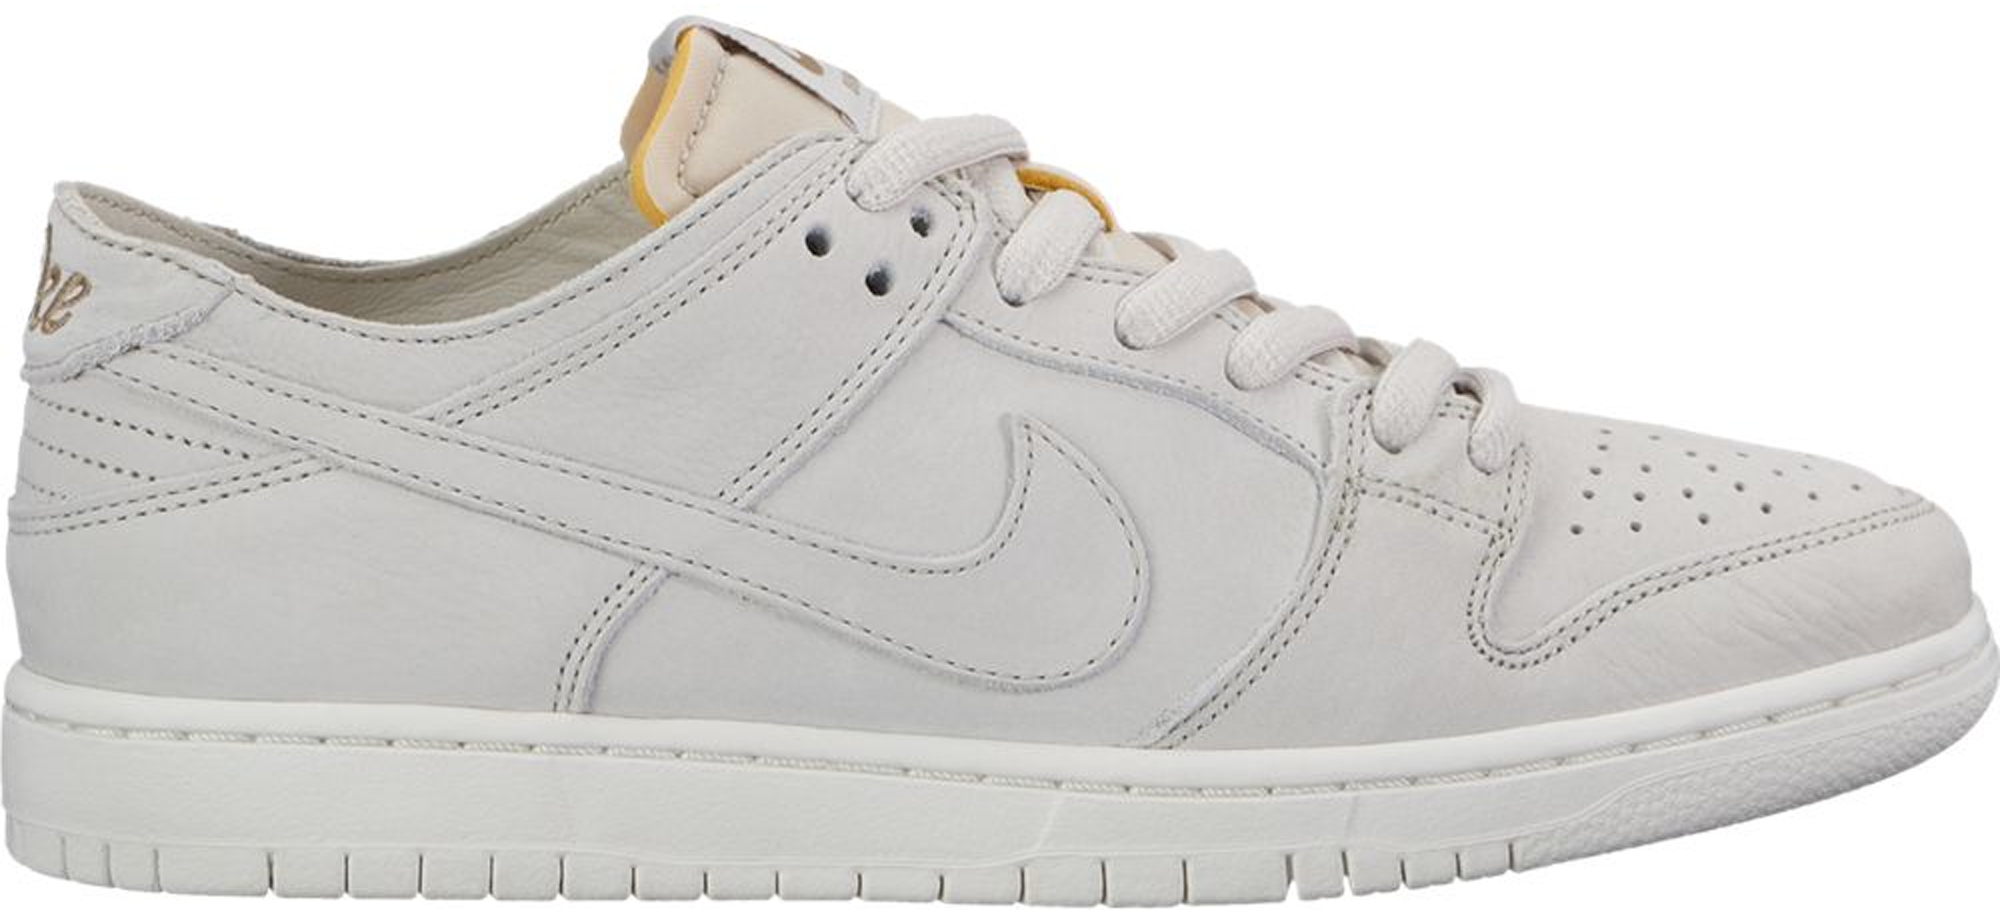 new product c8936 e60f7 HypeAnalyzer · Nike SB Dunk Low Decon Light Bone